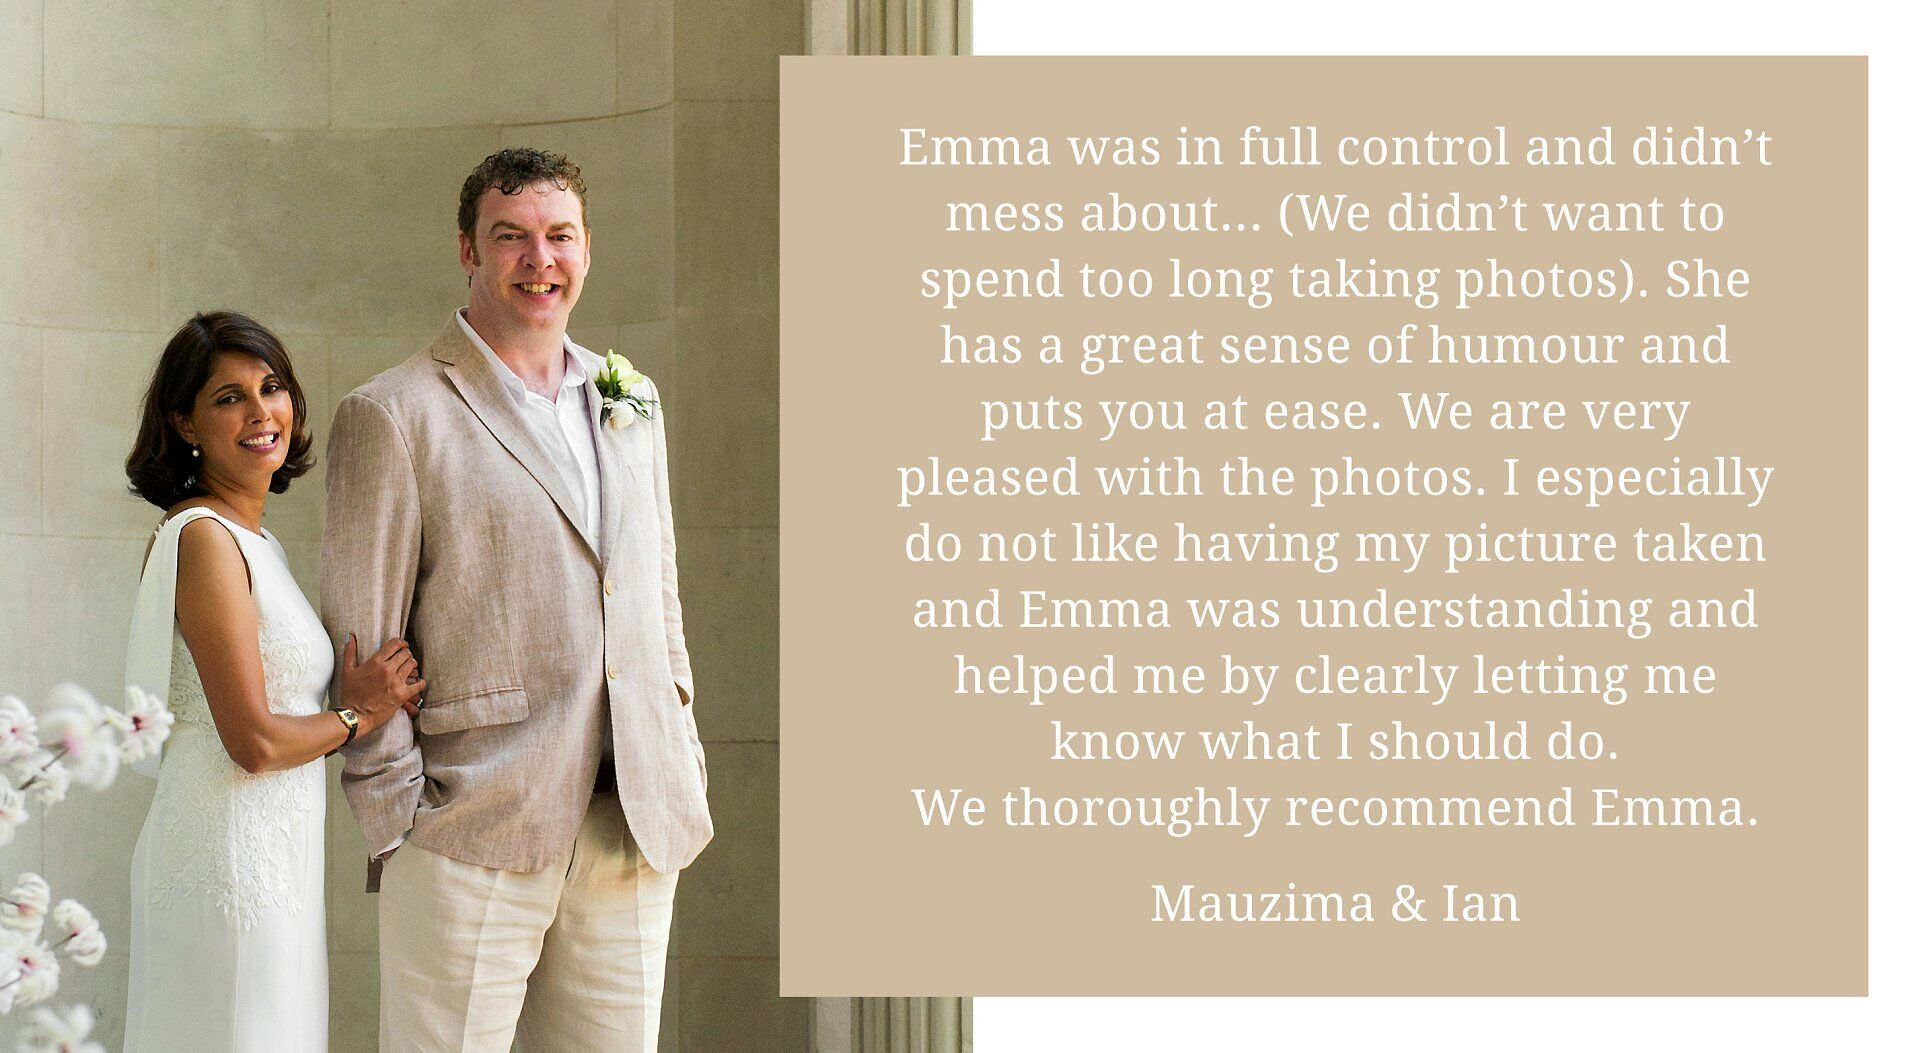 world cup quarter final wedding photographer at old marylebone town hall - client testimonial for emma duggan photography (soho room wedding photography)